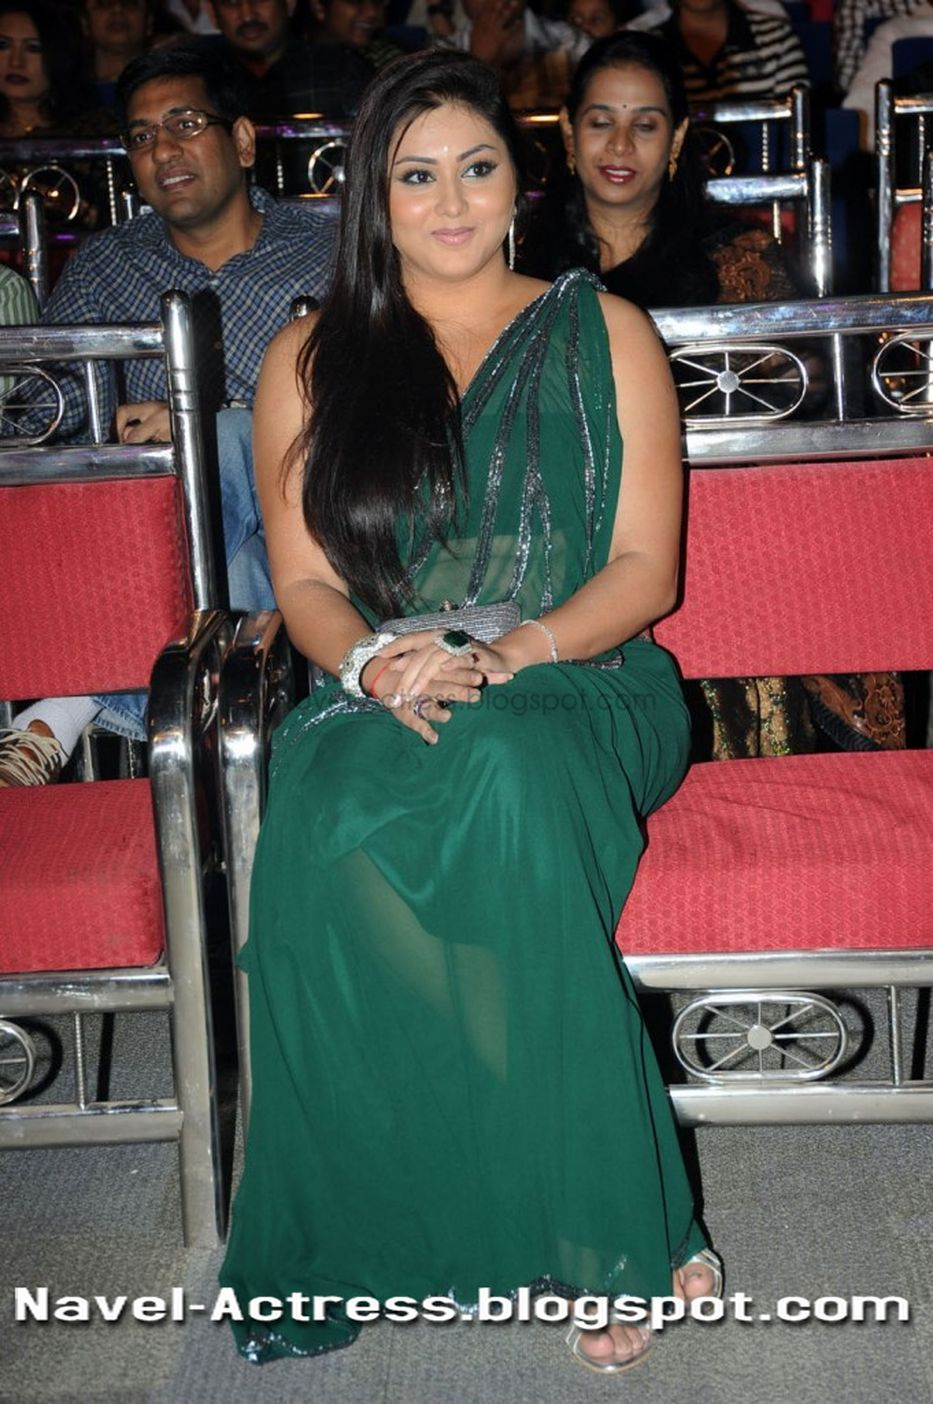 Namitha getting hot, hotter and hottest